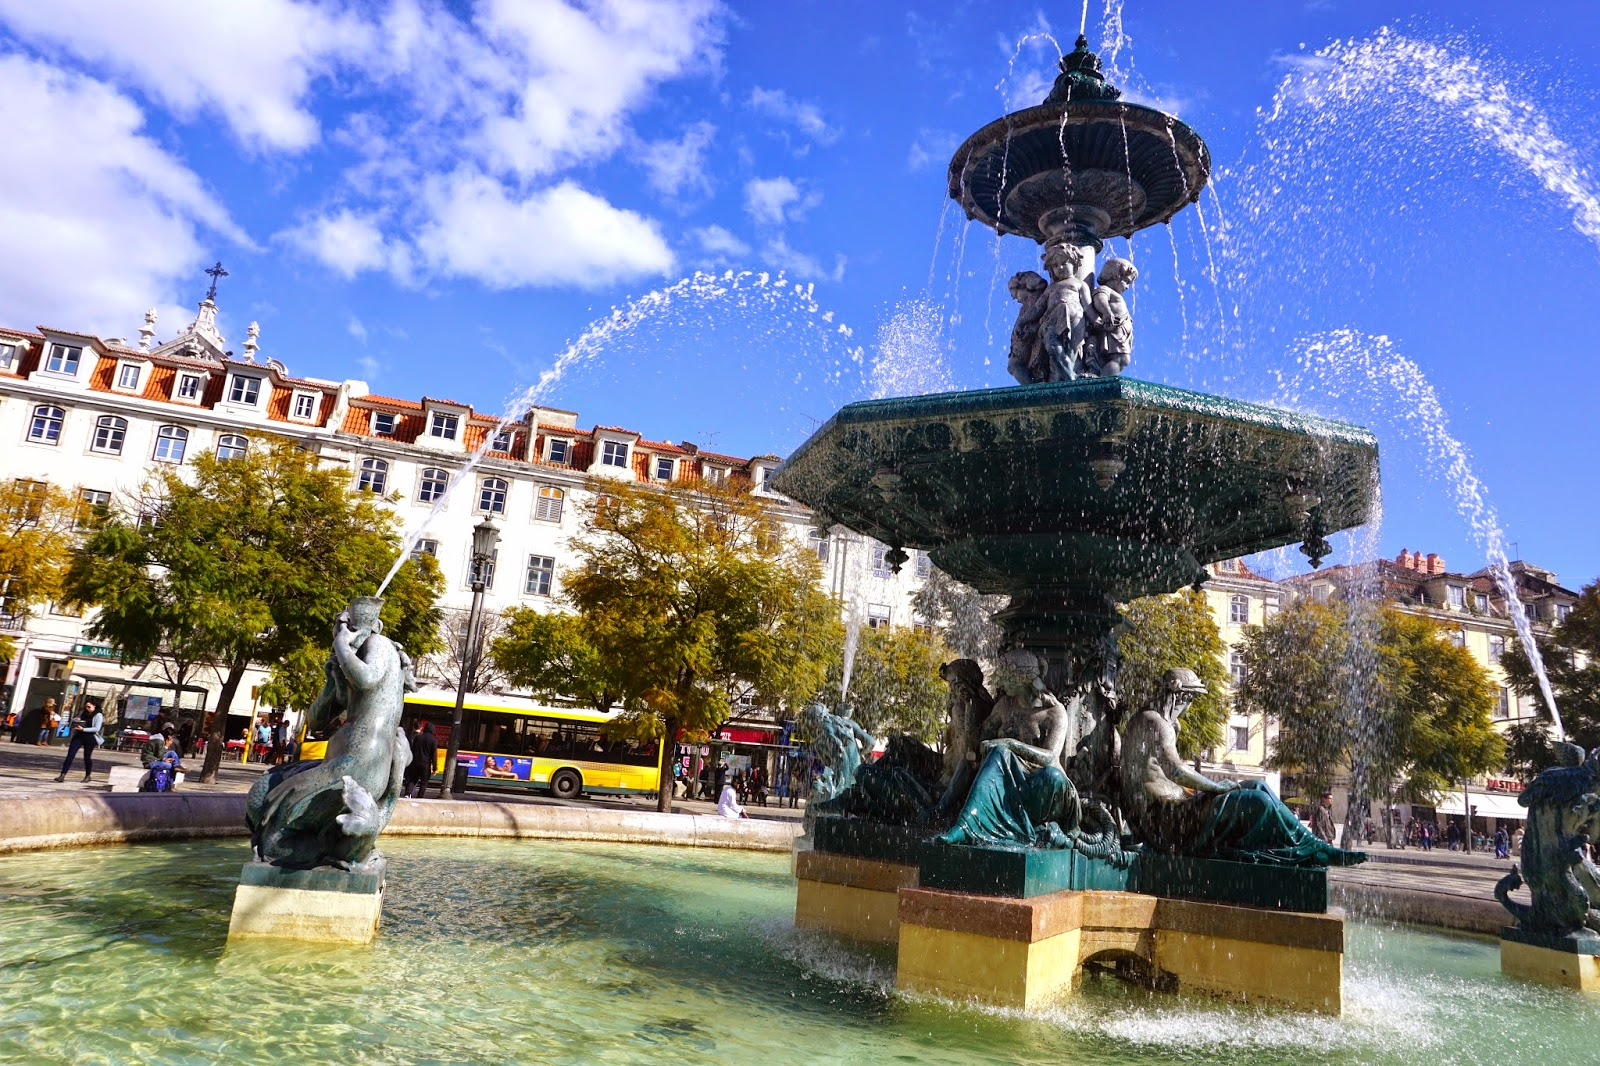 The water fountain at Rossio Square in Lisbon